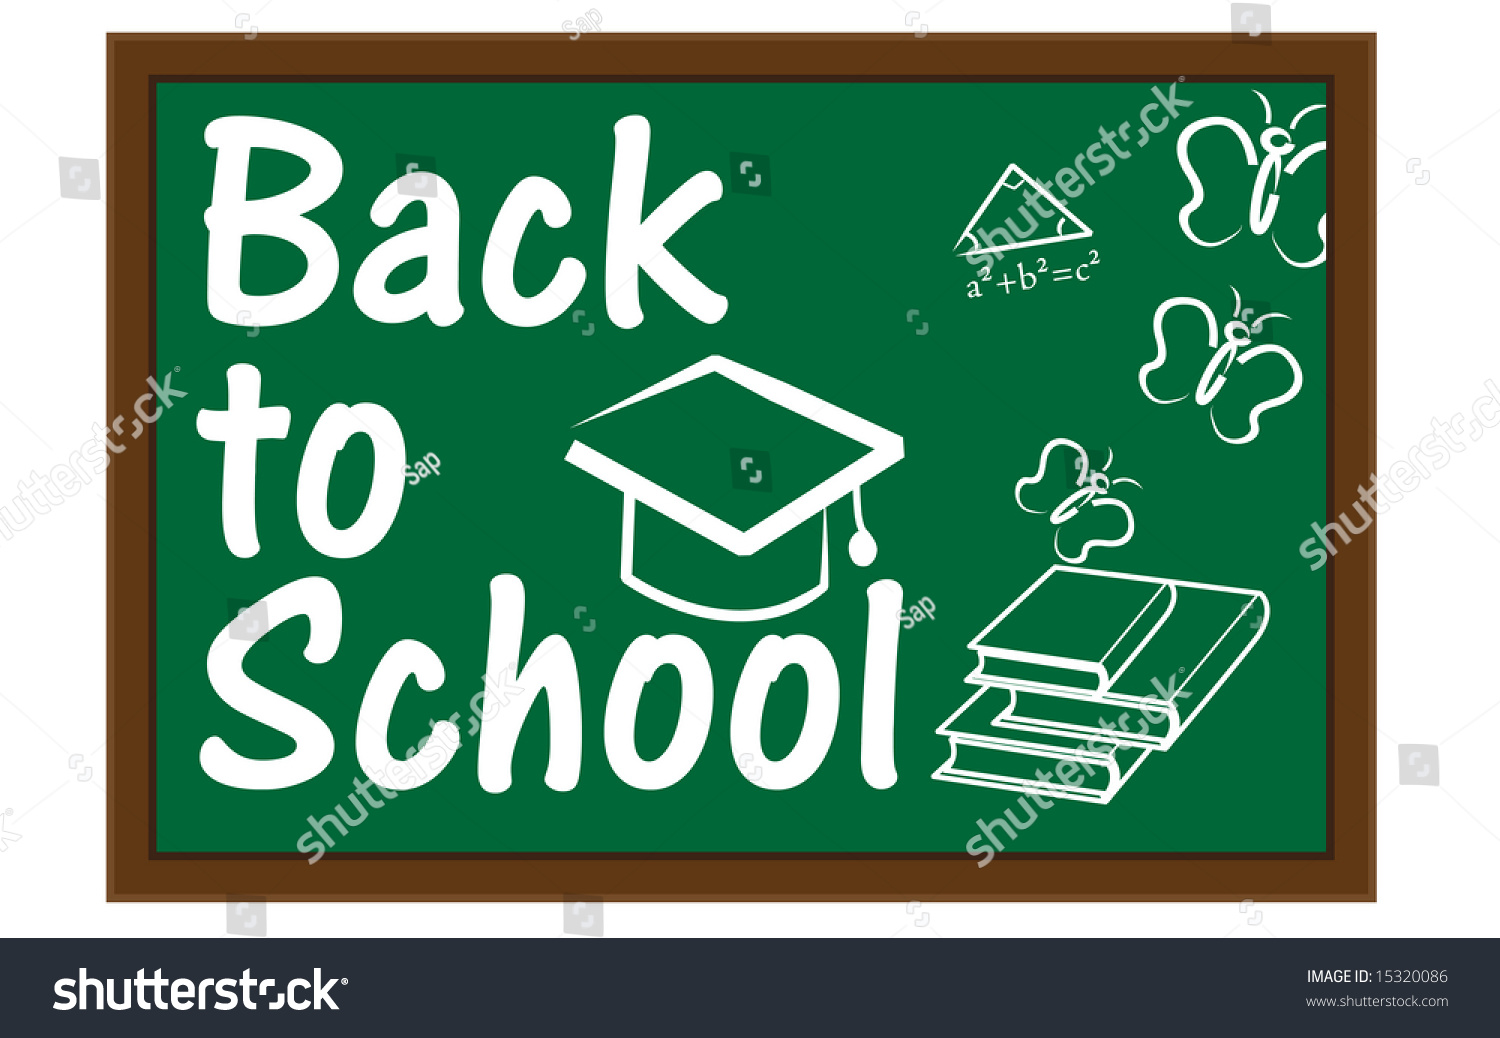 back to school vector - photo #19